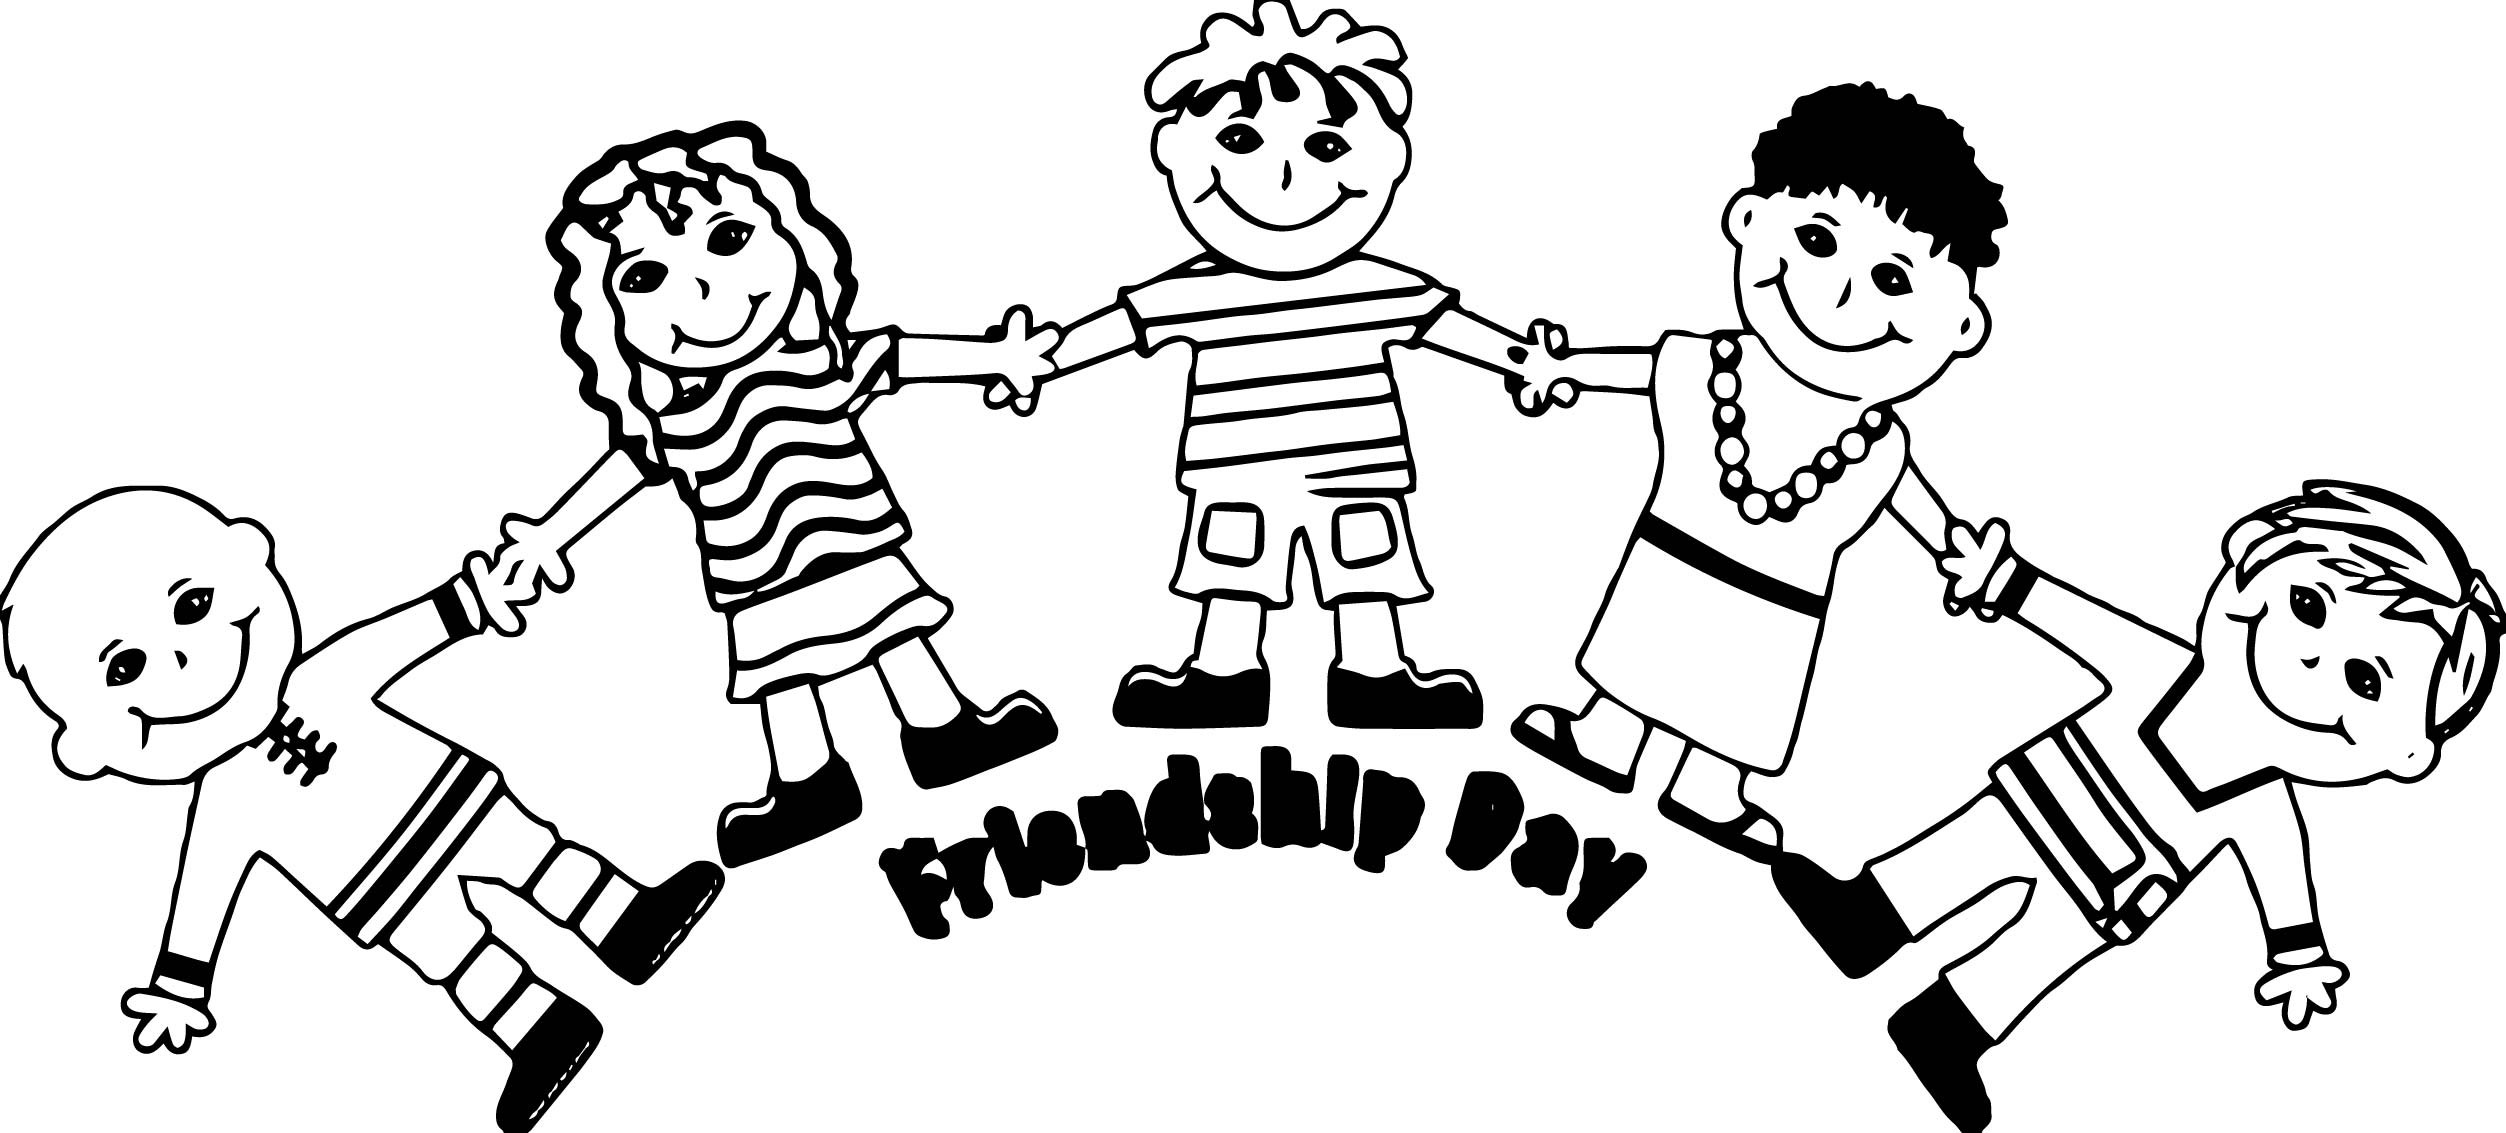 2506x1133 Friendship Coloring Page Unique Friendship Day Five Friends